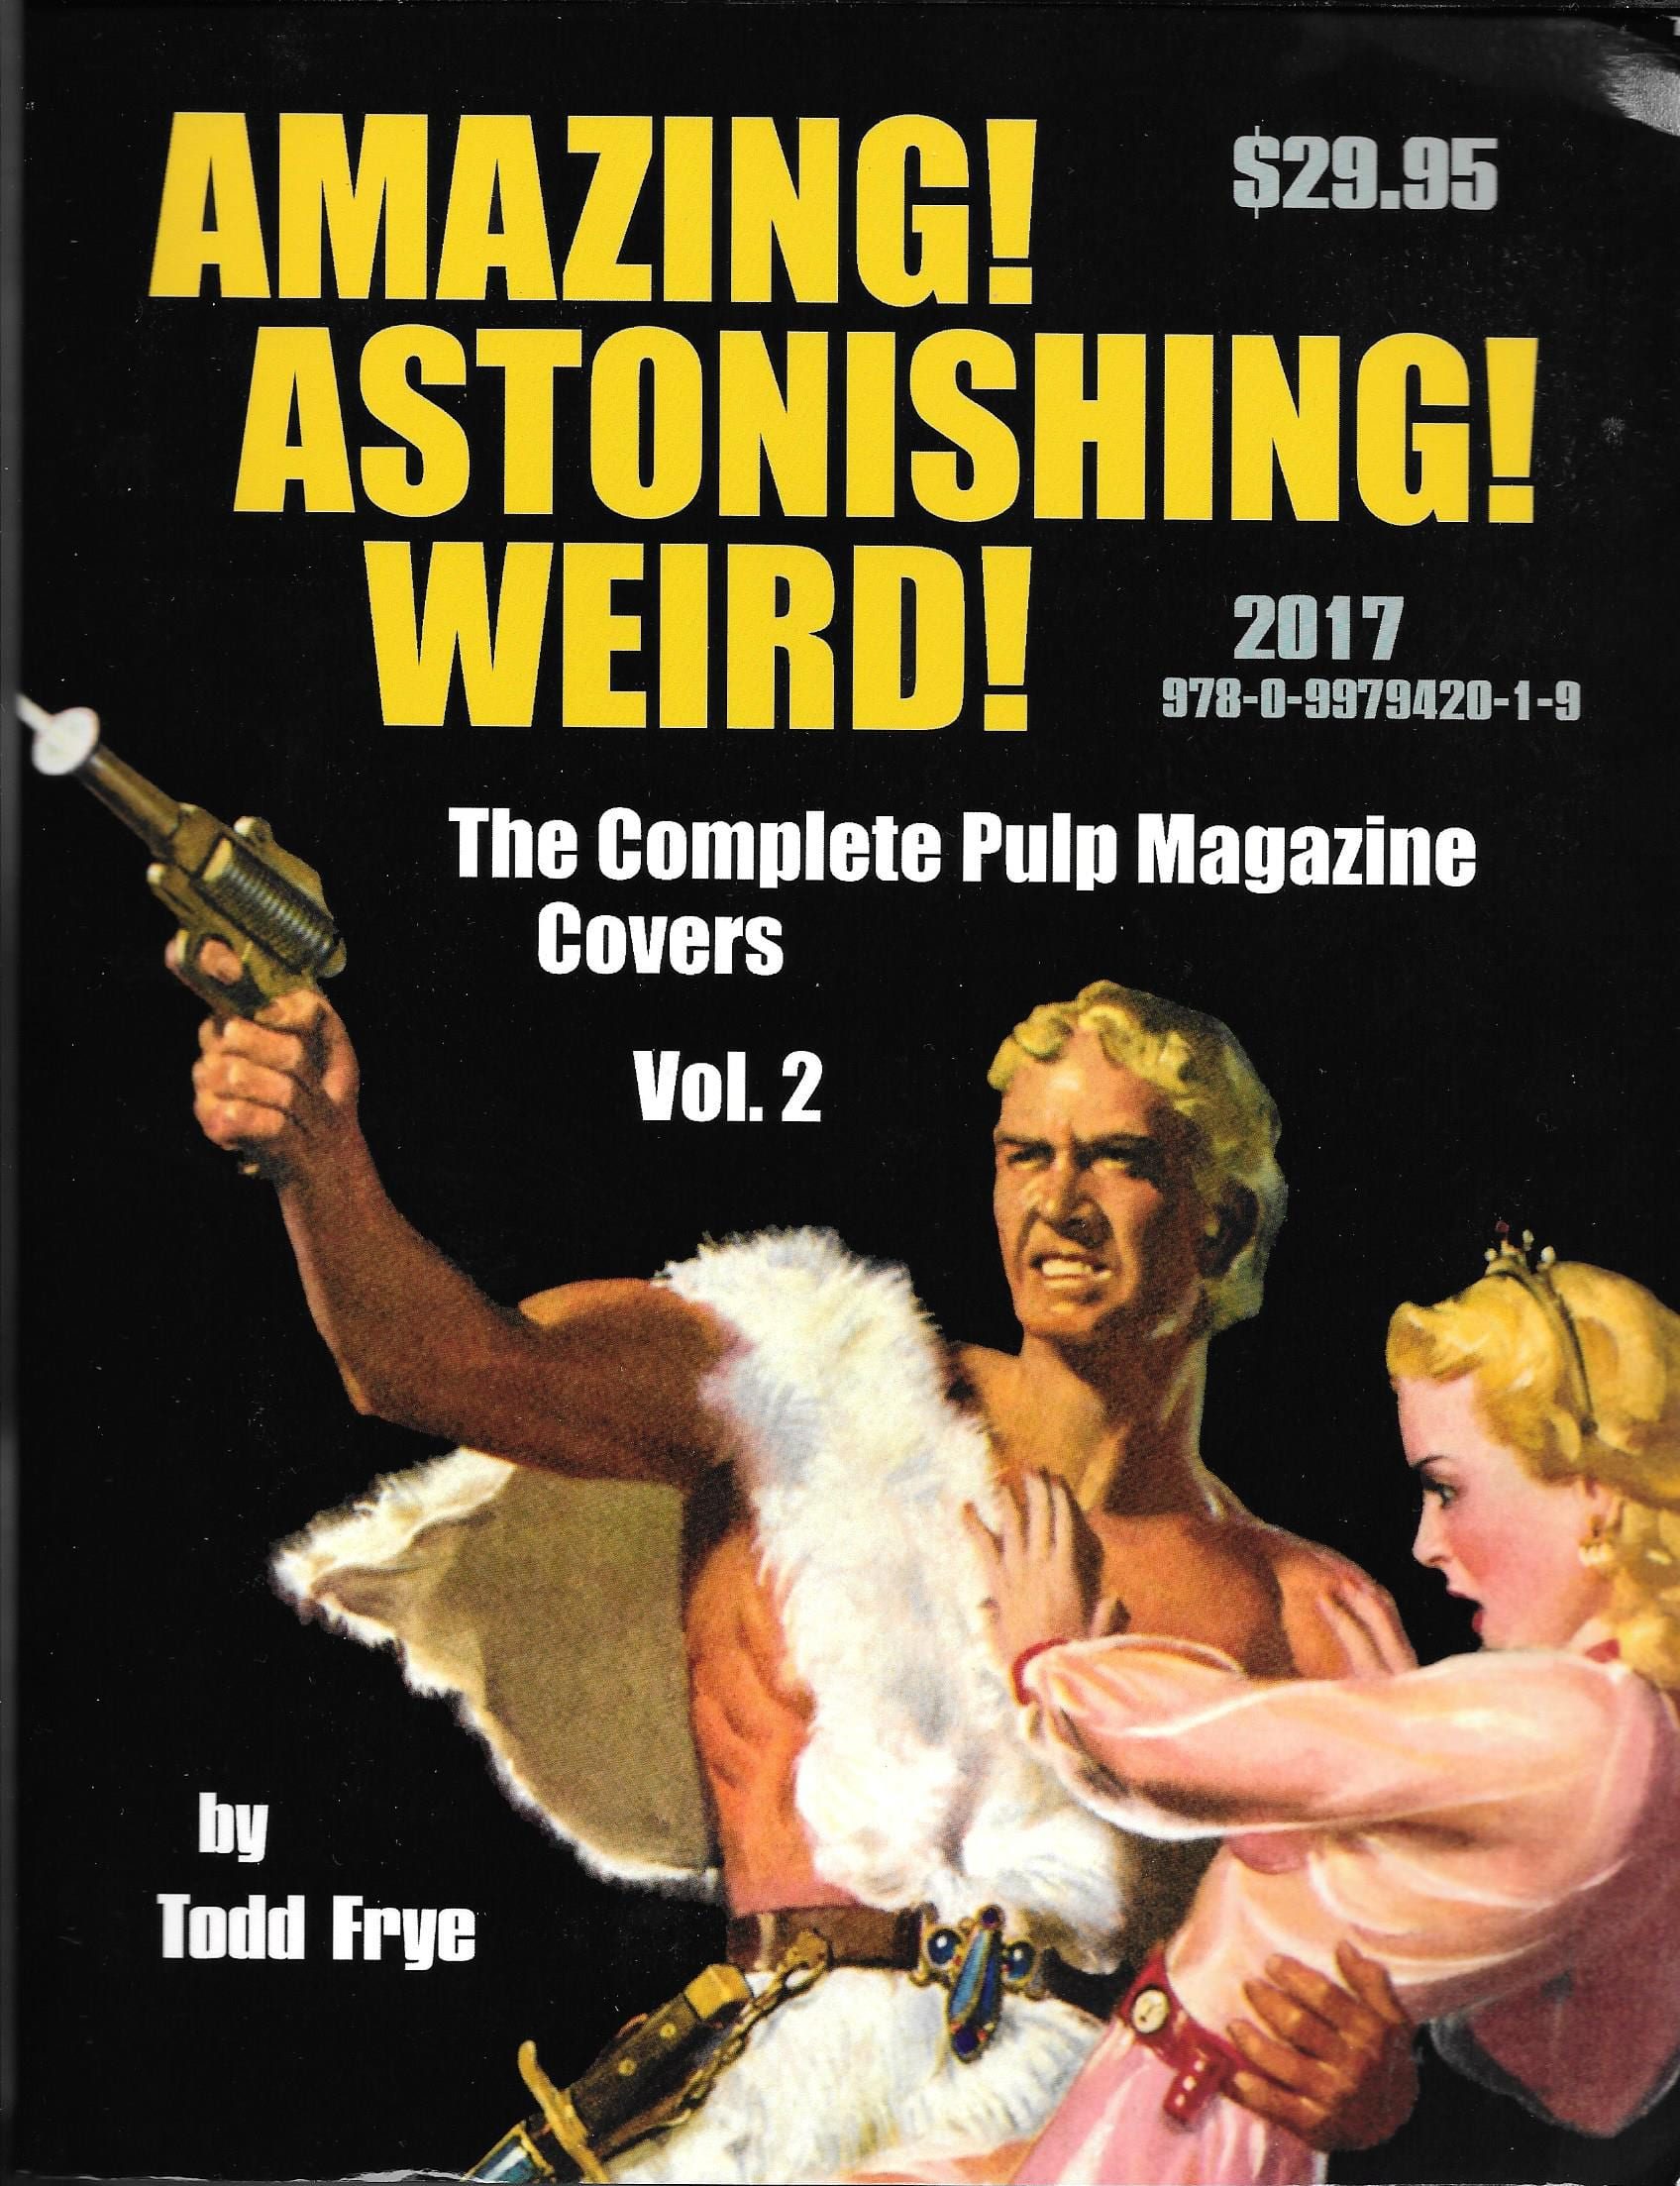 AMAZING! ASTONISHING! WEIRD! Book Review By Ron Fortier